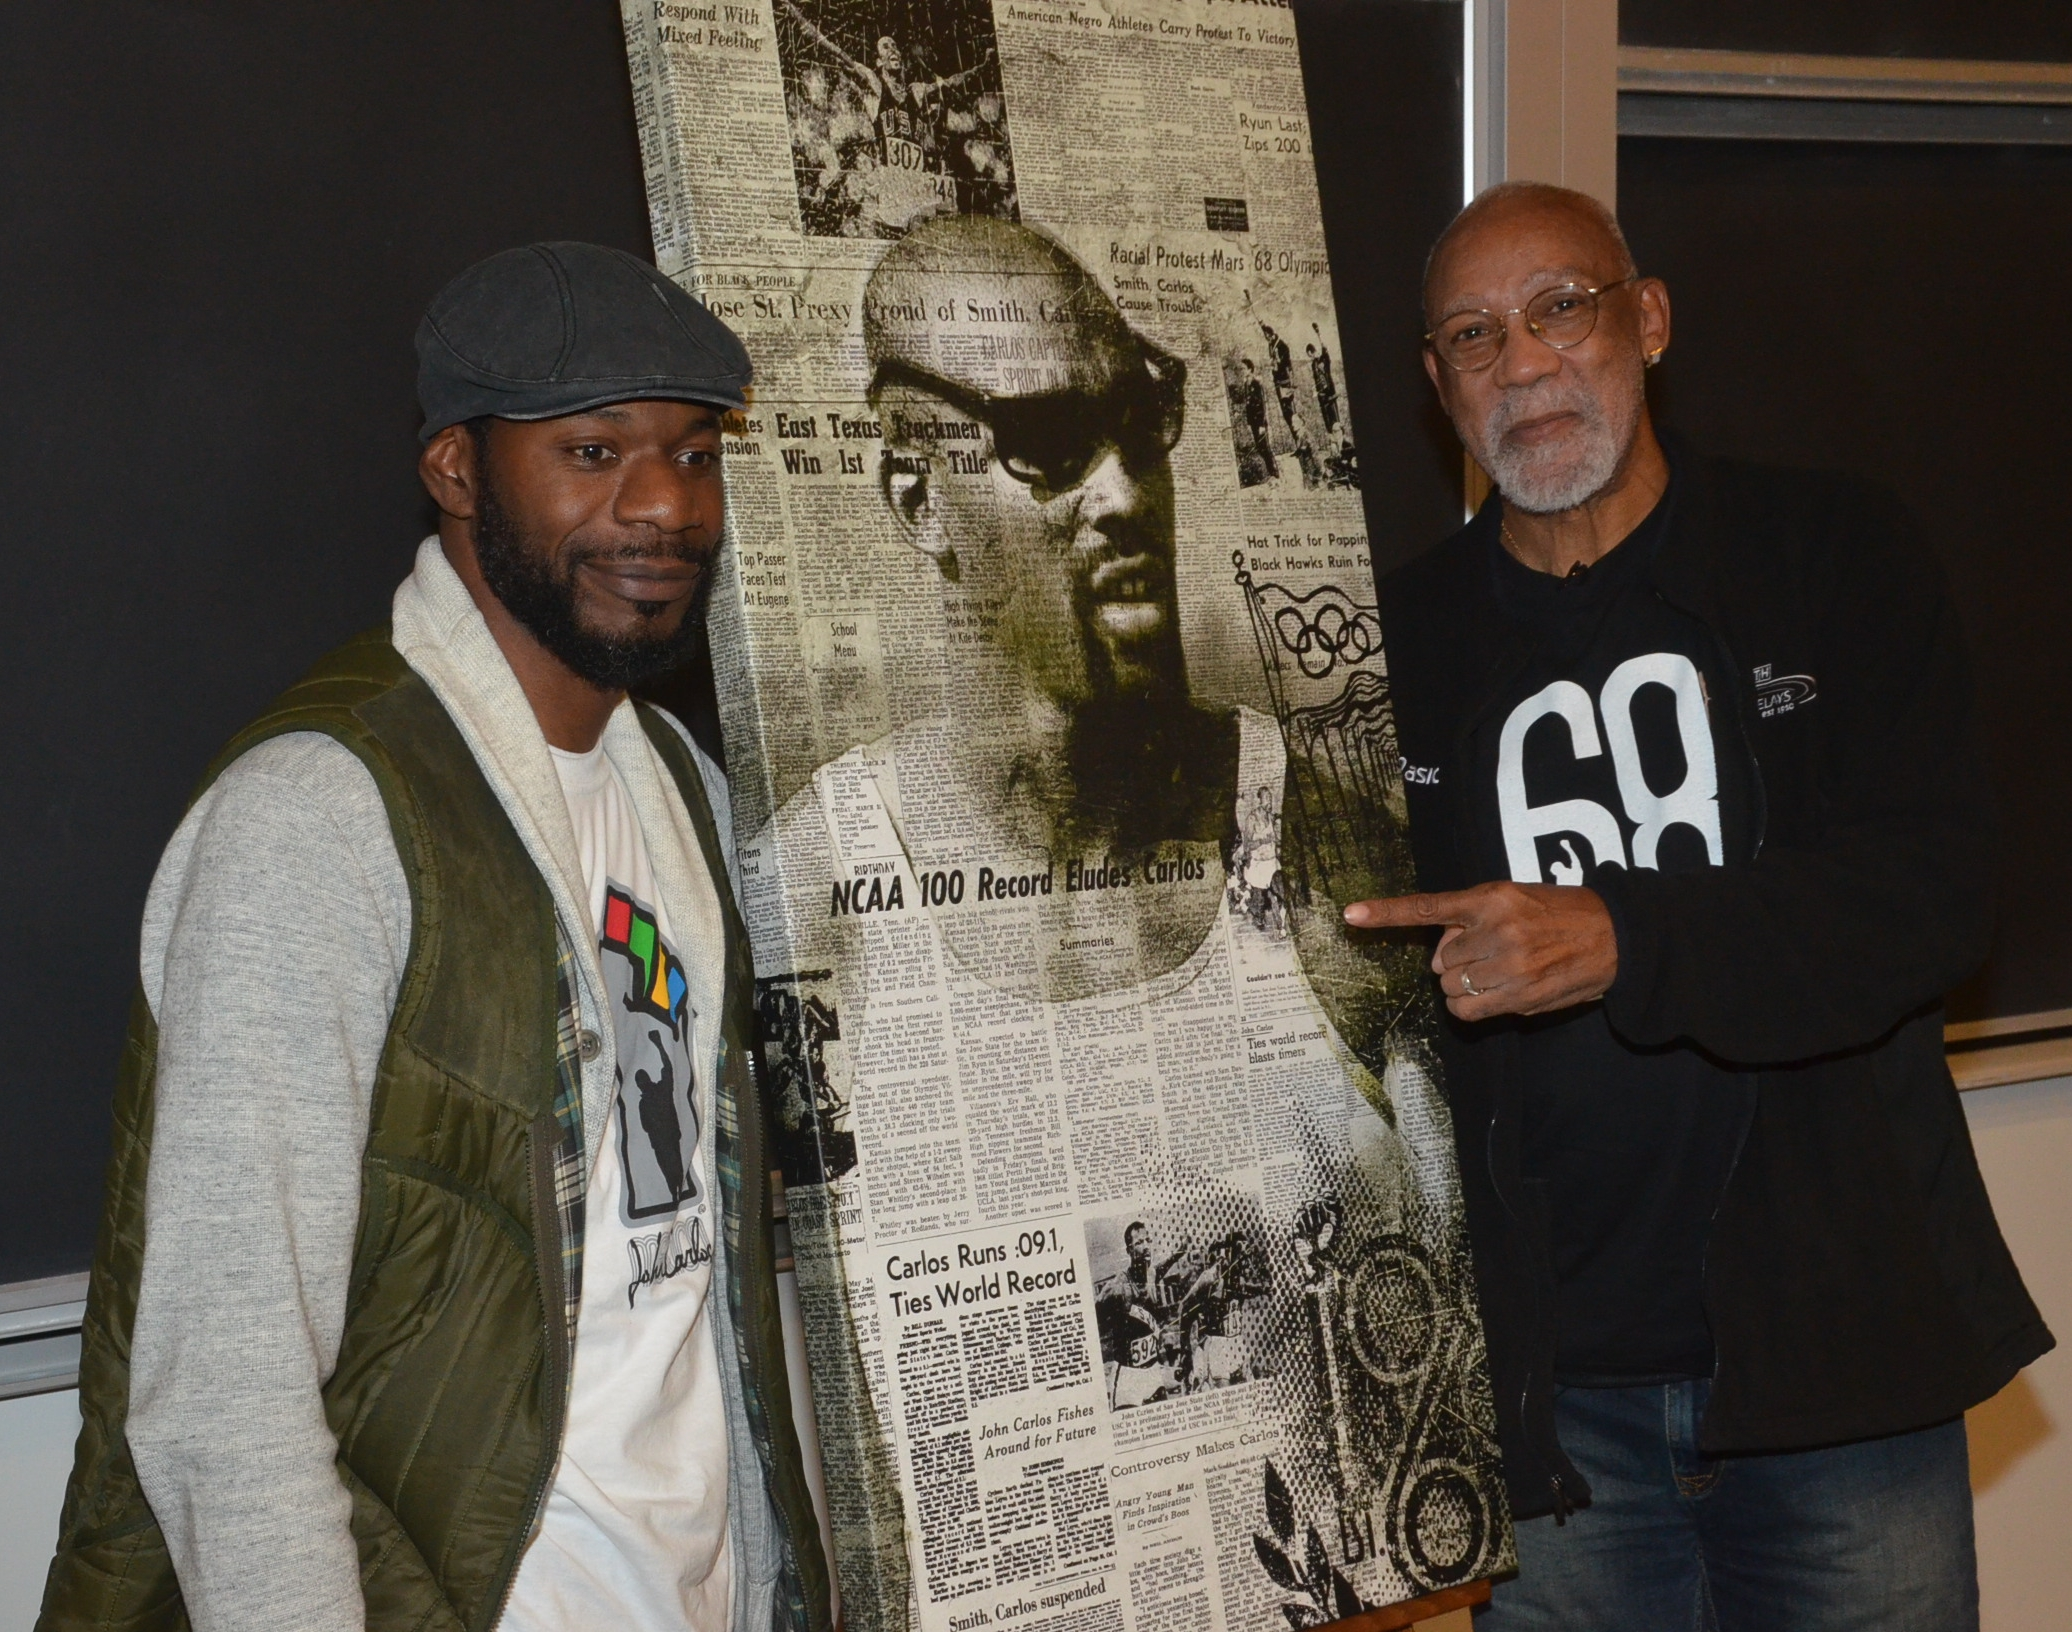 Mark Stoddart (l) presented John Carlos with a personalized painting during his November 2011 visit to Toronto.